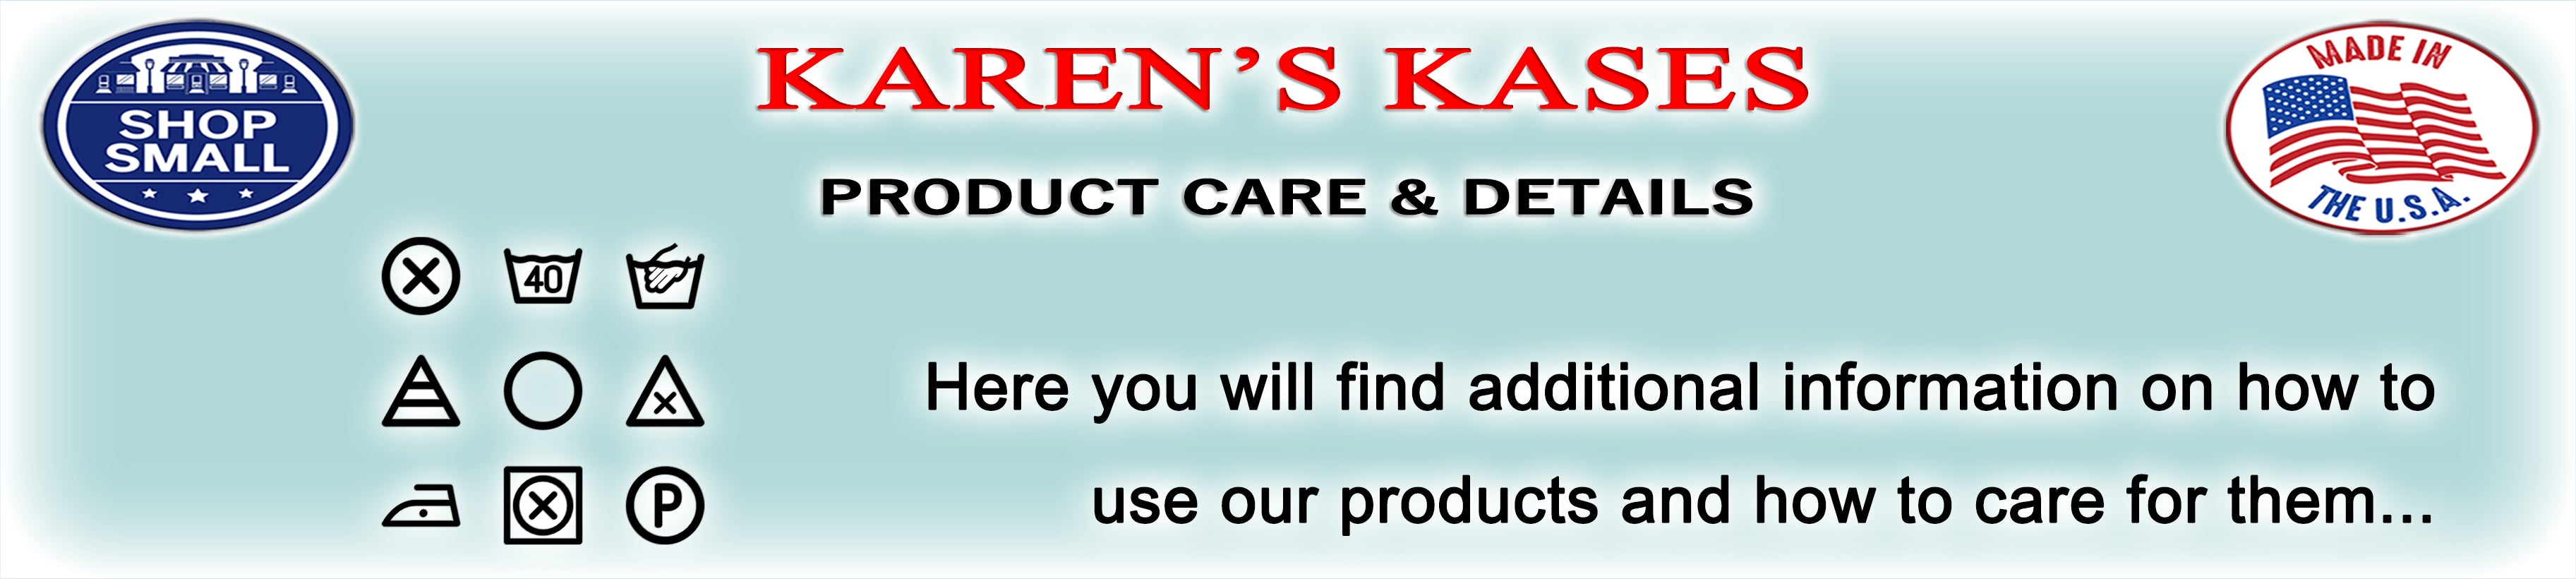 Karen's Kases Product Instructions Page